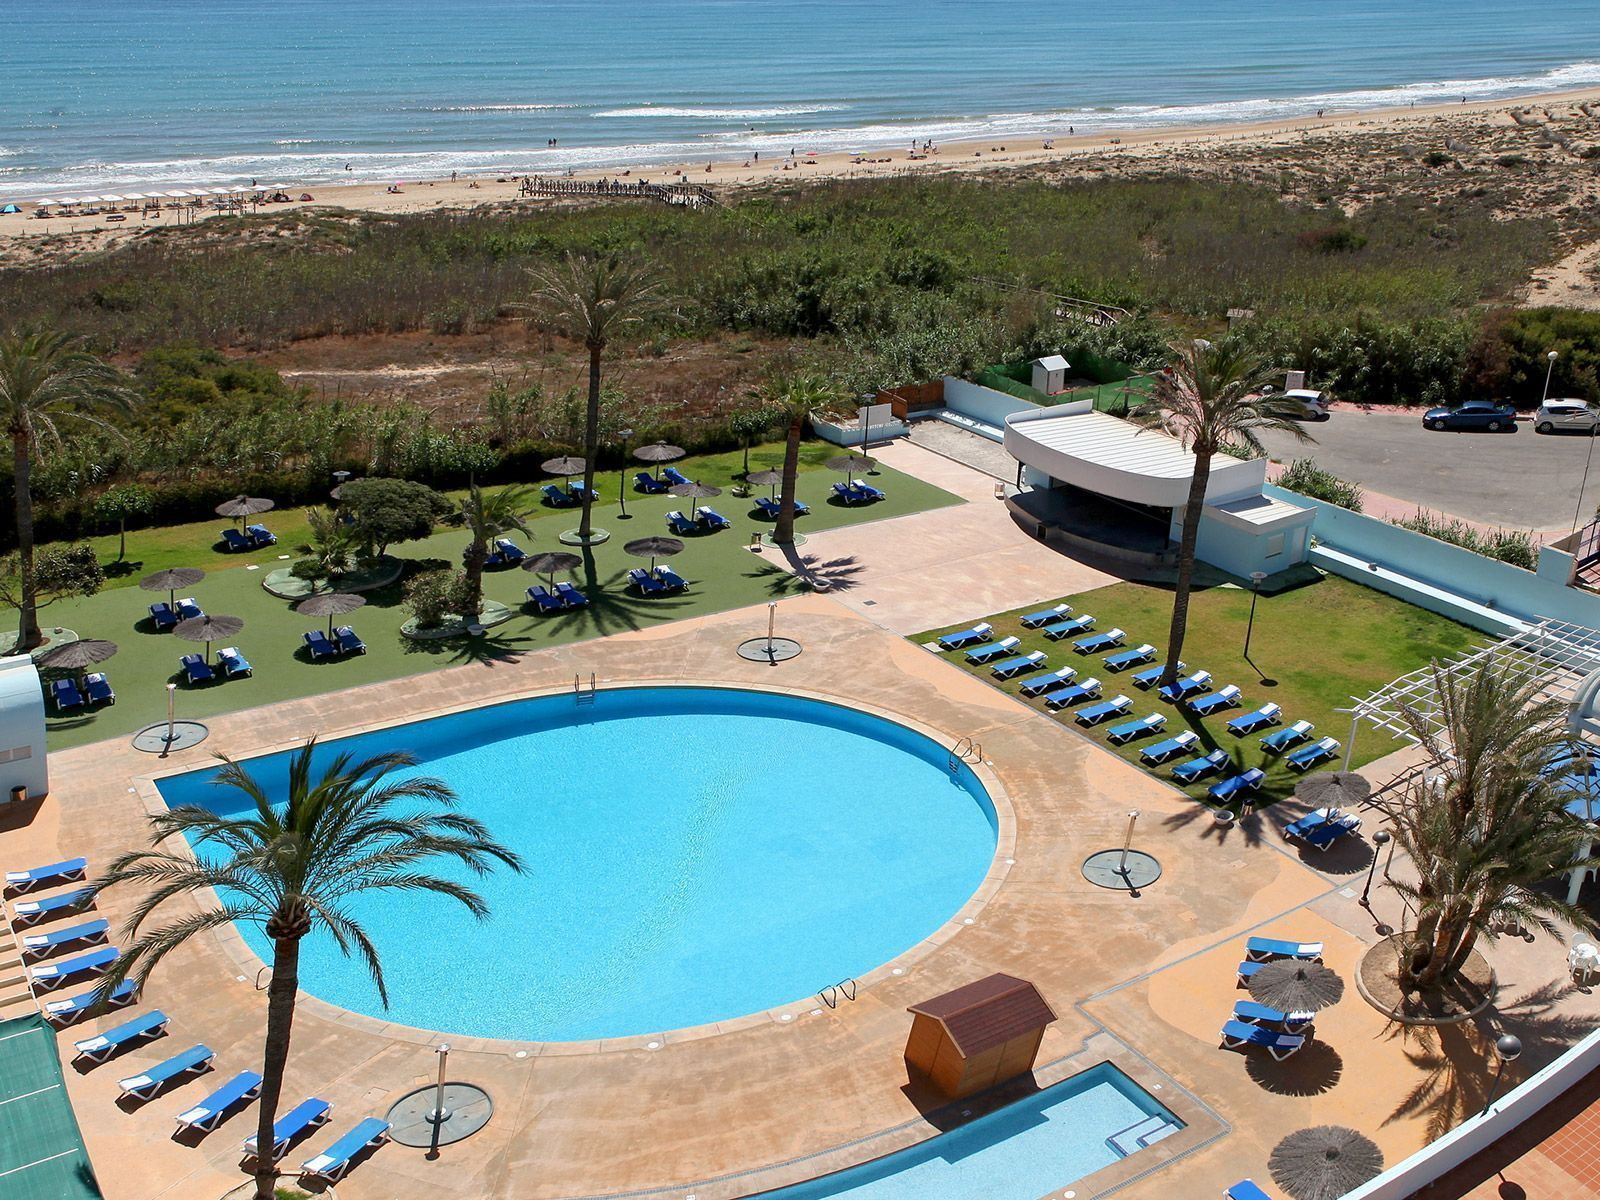 Piscinas del Hotel Playas de Guardamar